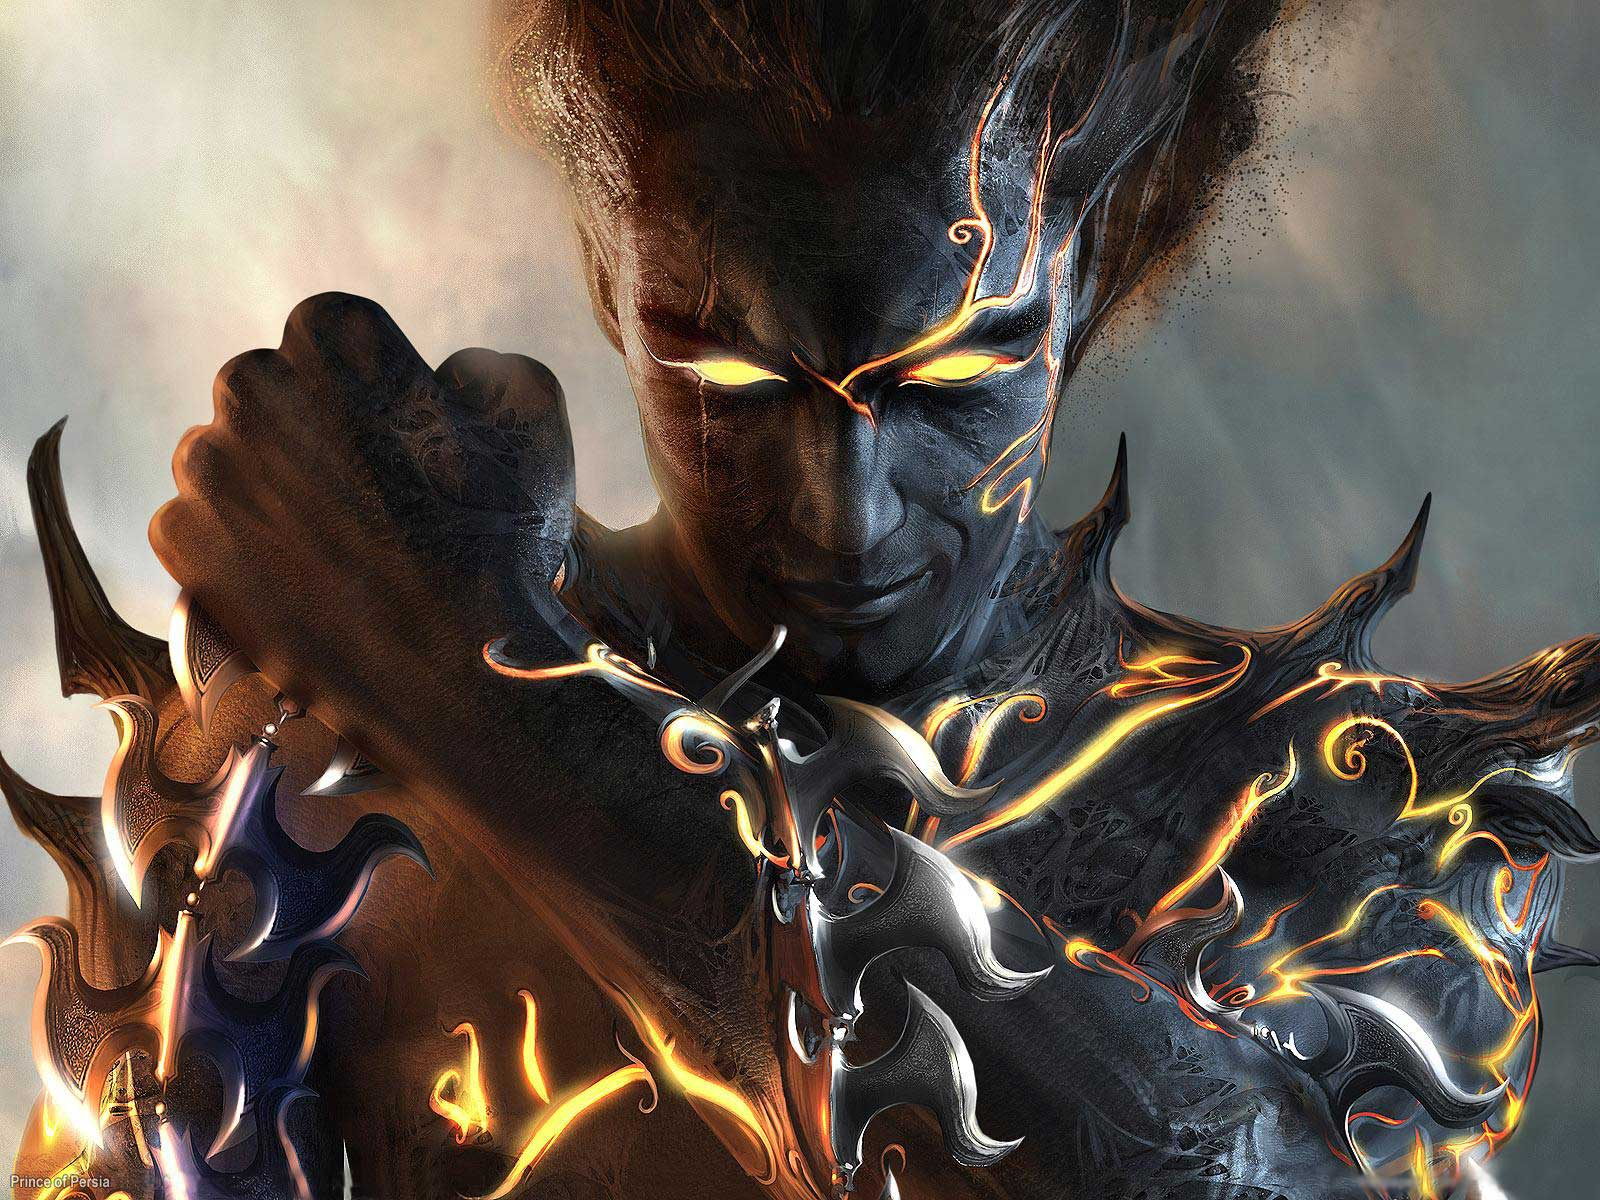 Prince of persia wallpapers free download 9game.